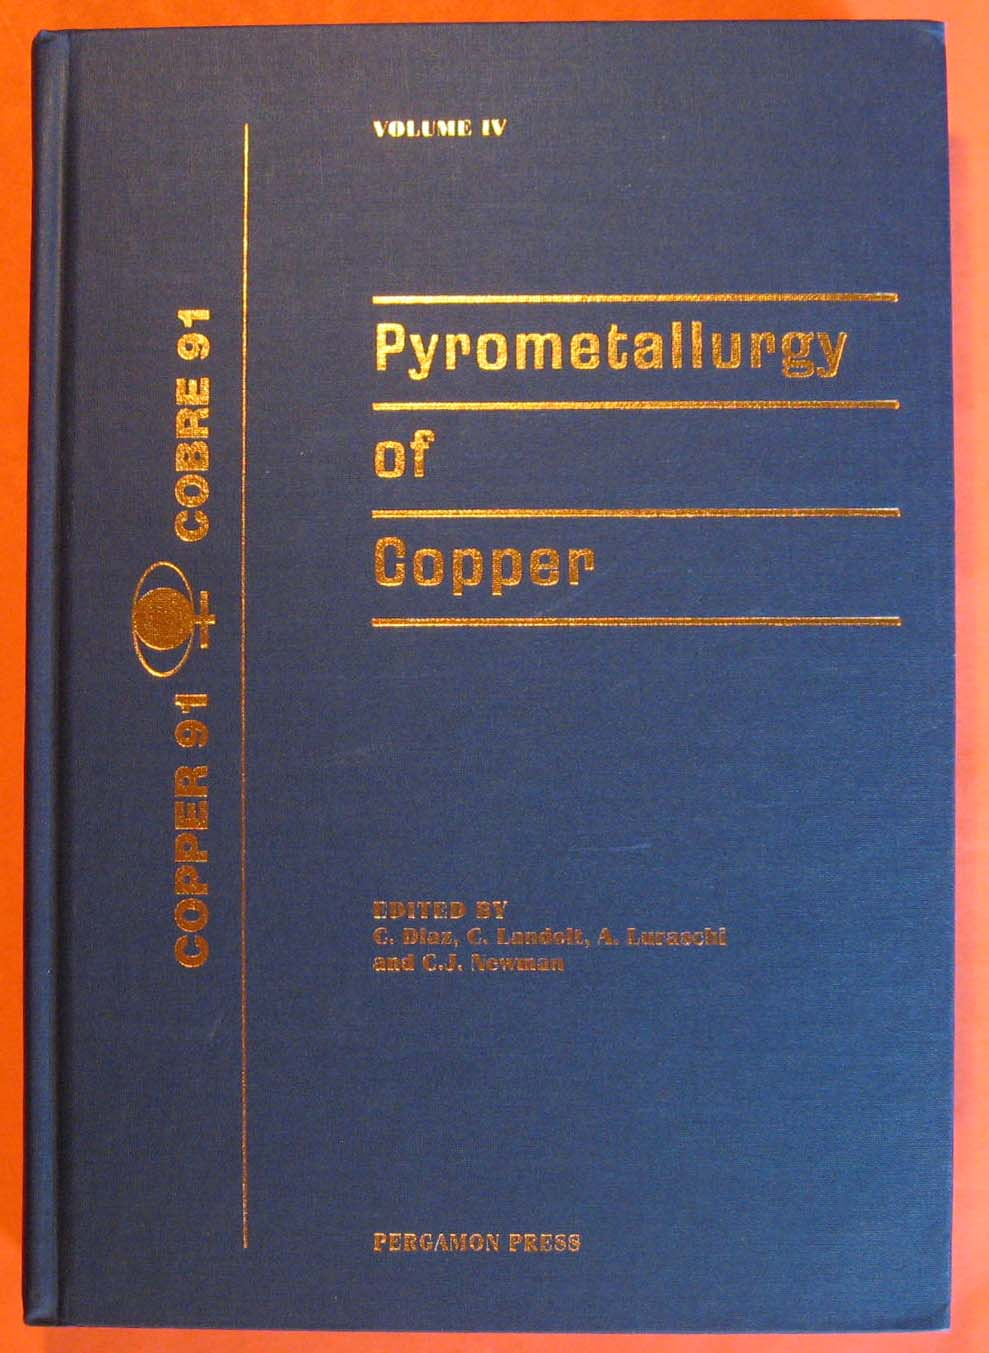 Image for Pyrometallurgy of Copper; Vol. 4 of the Proceedings of the Copper 91-Cobre 91 International Symposium: August 18-21, 1991, Ottawa, Canada